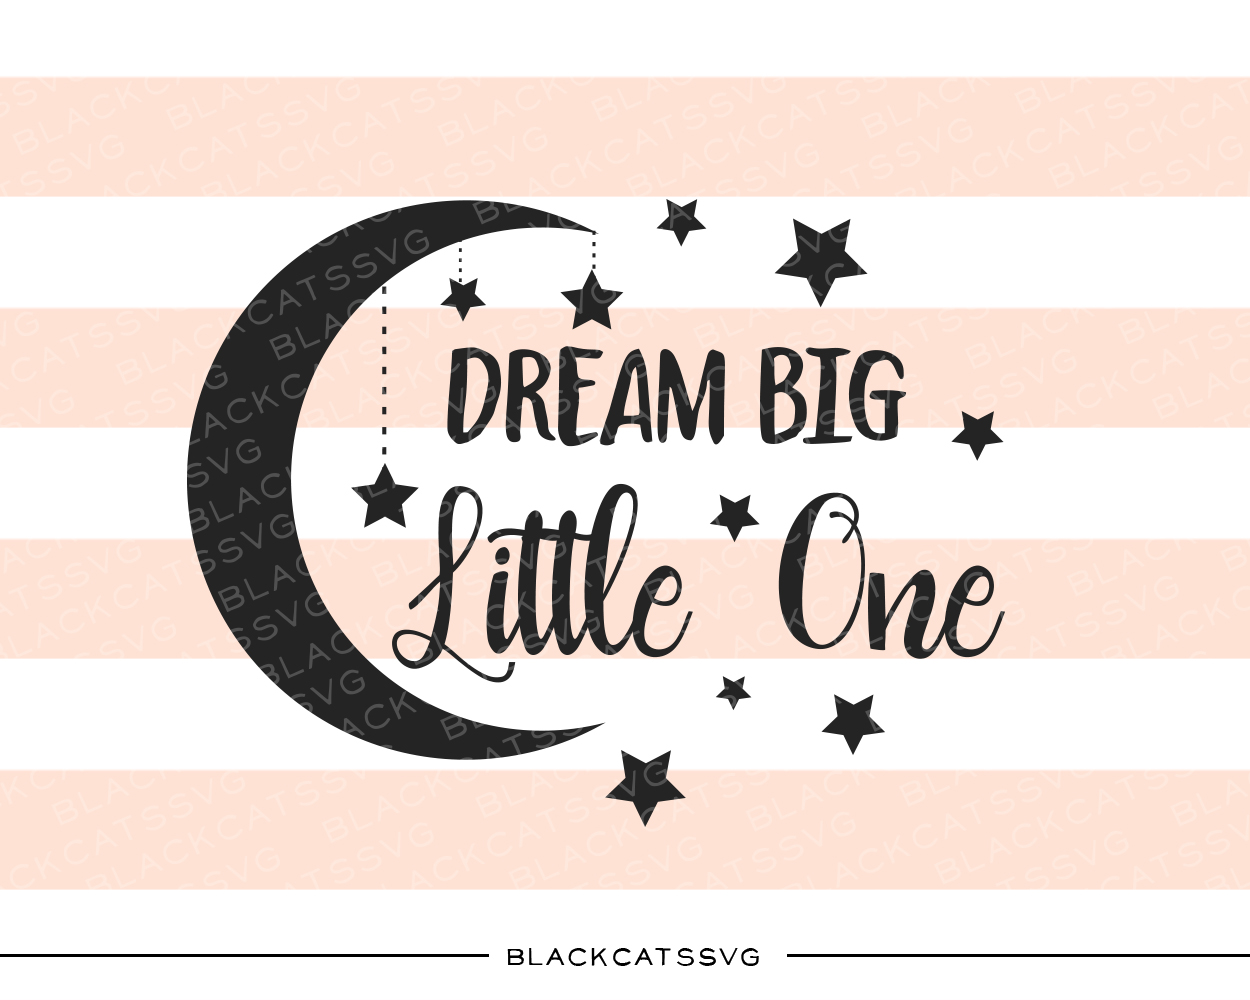 Download Free Dream Big Little One Svg Cut File By Blackcatssvg Creative Fabrica for Cricut Explore, Silhouette and other cutting machines.